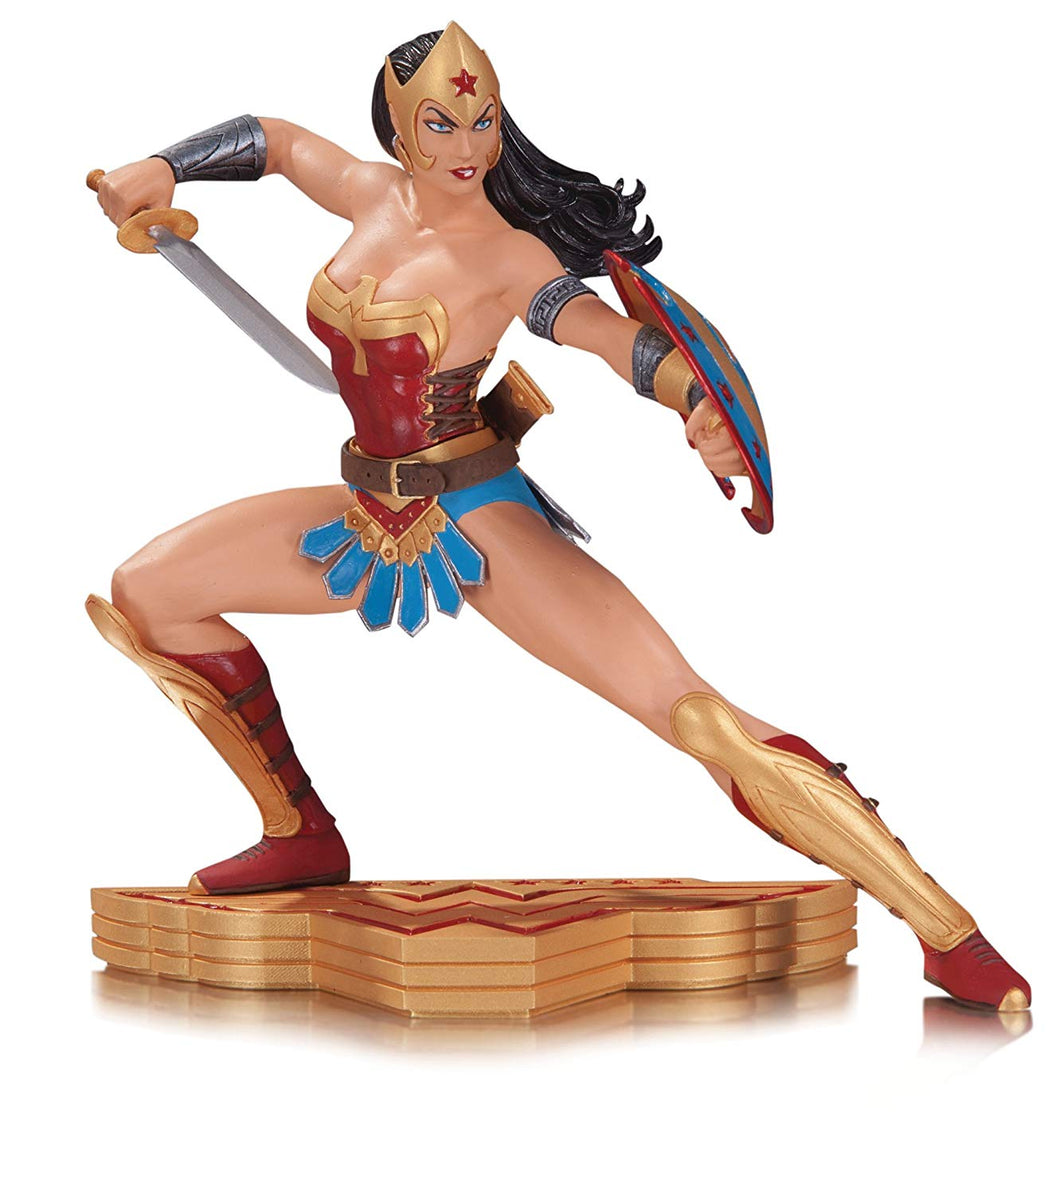 Wonder Woman The Art of War Statue by Jose Luis Garcia-Lopez